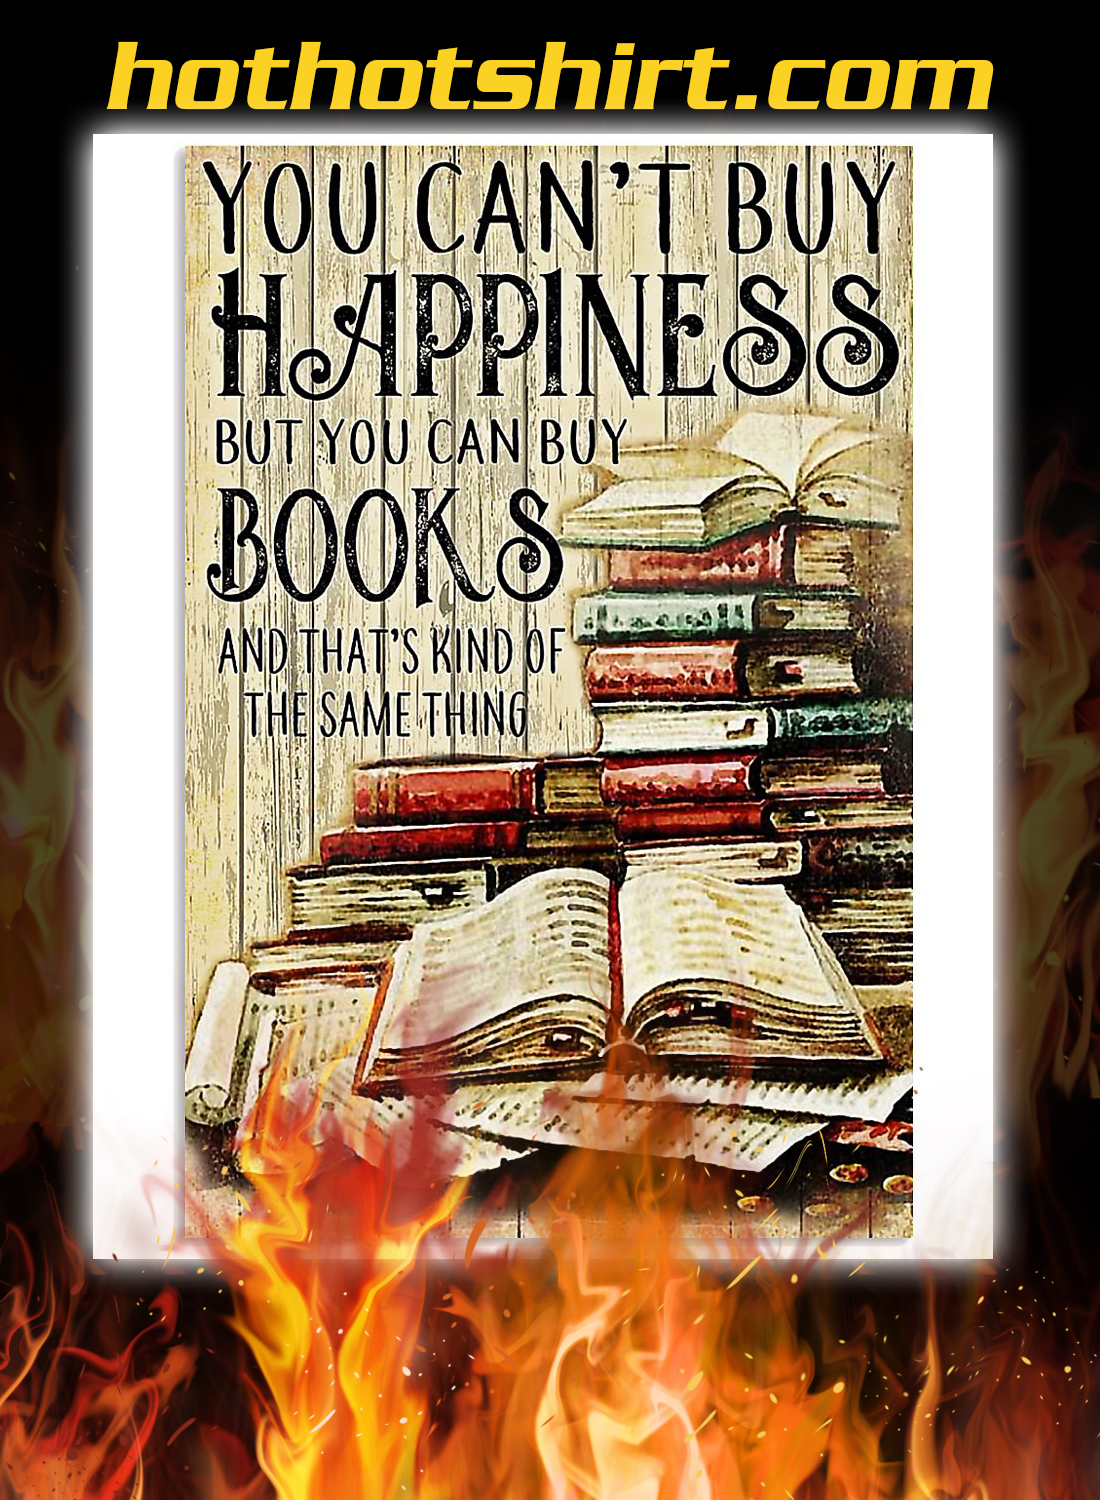 You can't buy happiness but you can buy books poster